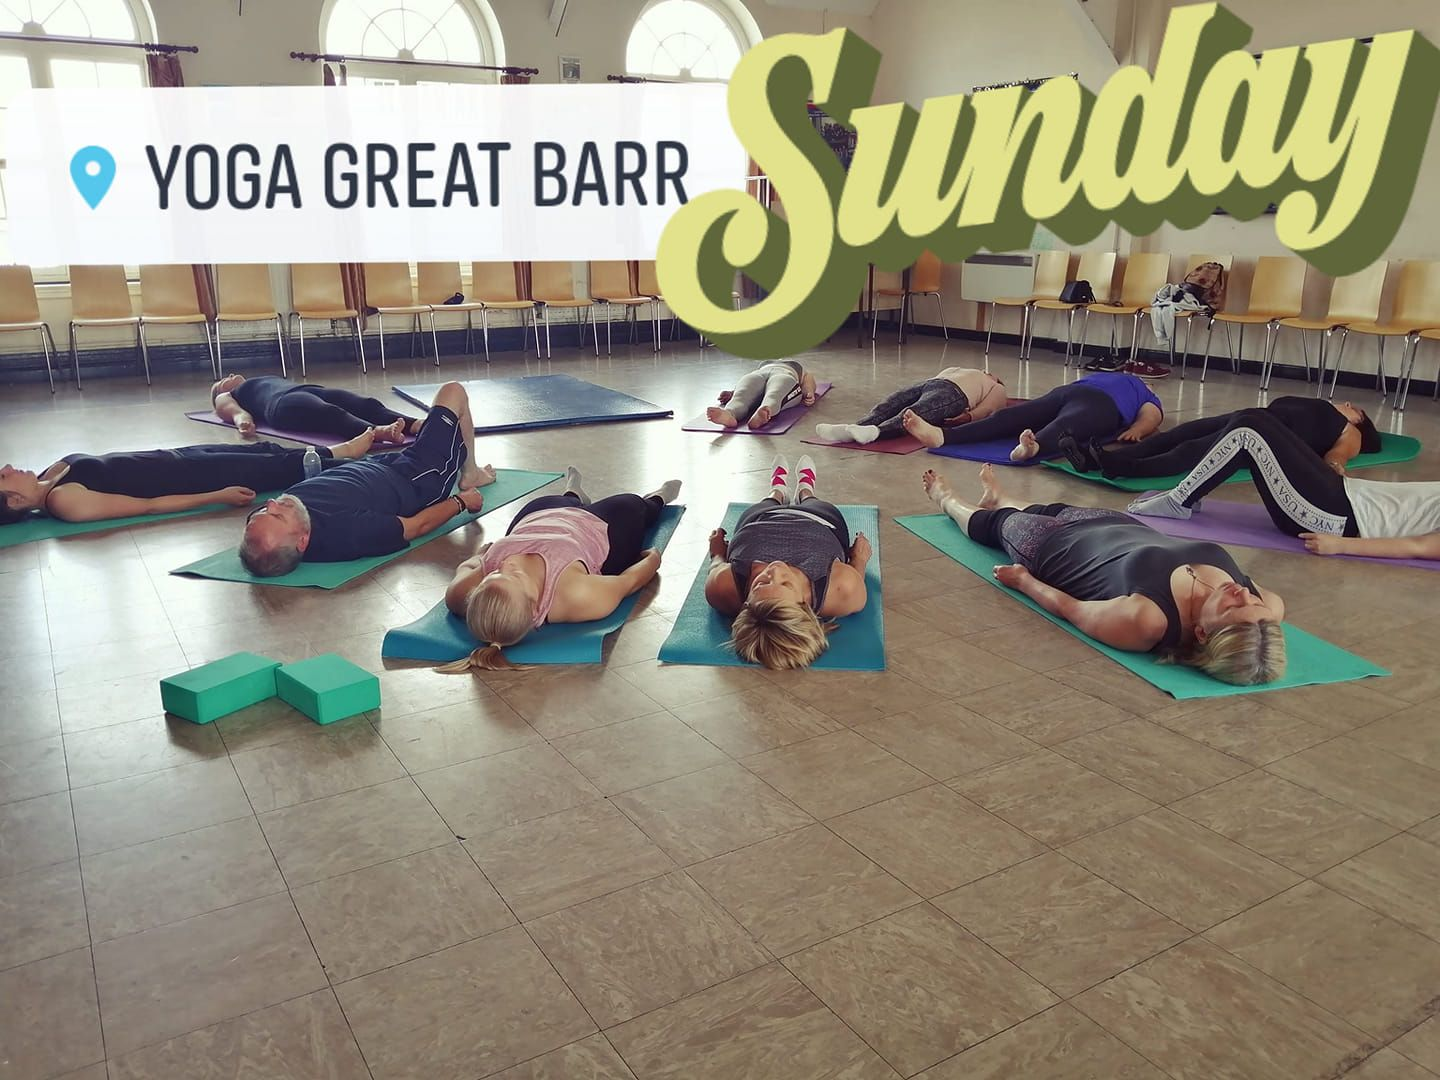 New Central England Member Group YOGA starts in Birmingham